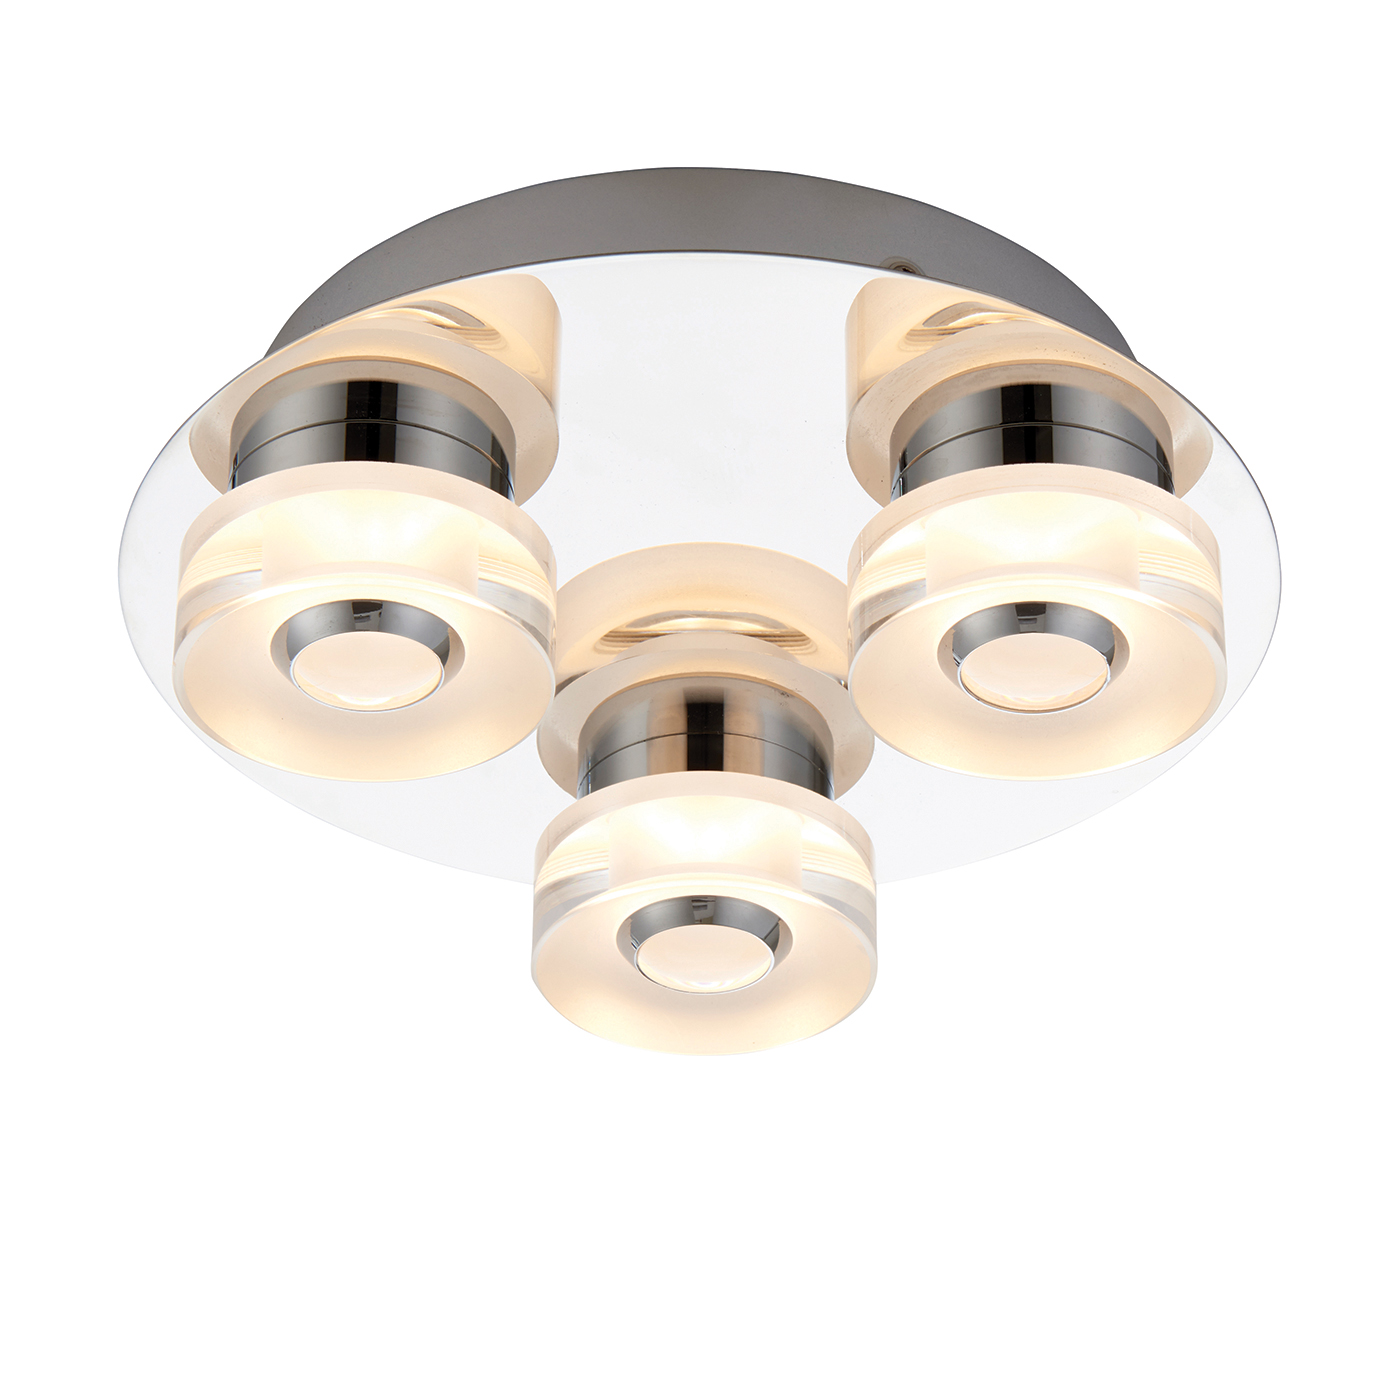 Endon Rita 3lt flush LED bathroom ceiling light IP44 4.5W & 0.45W chrome acrylic Thumbnail 1